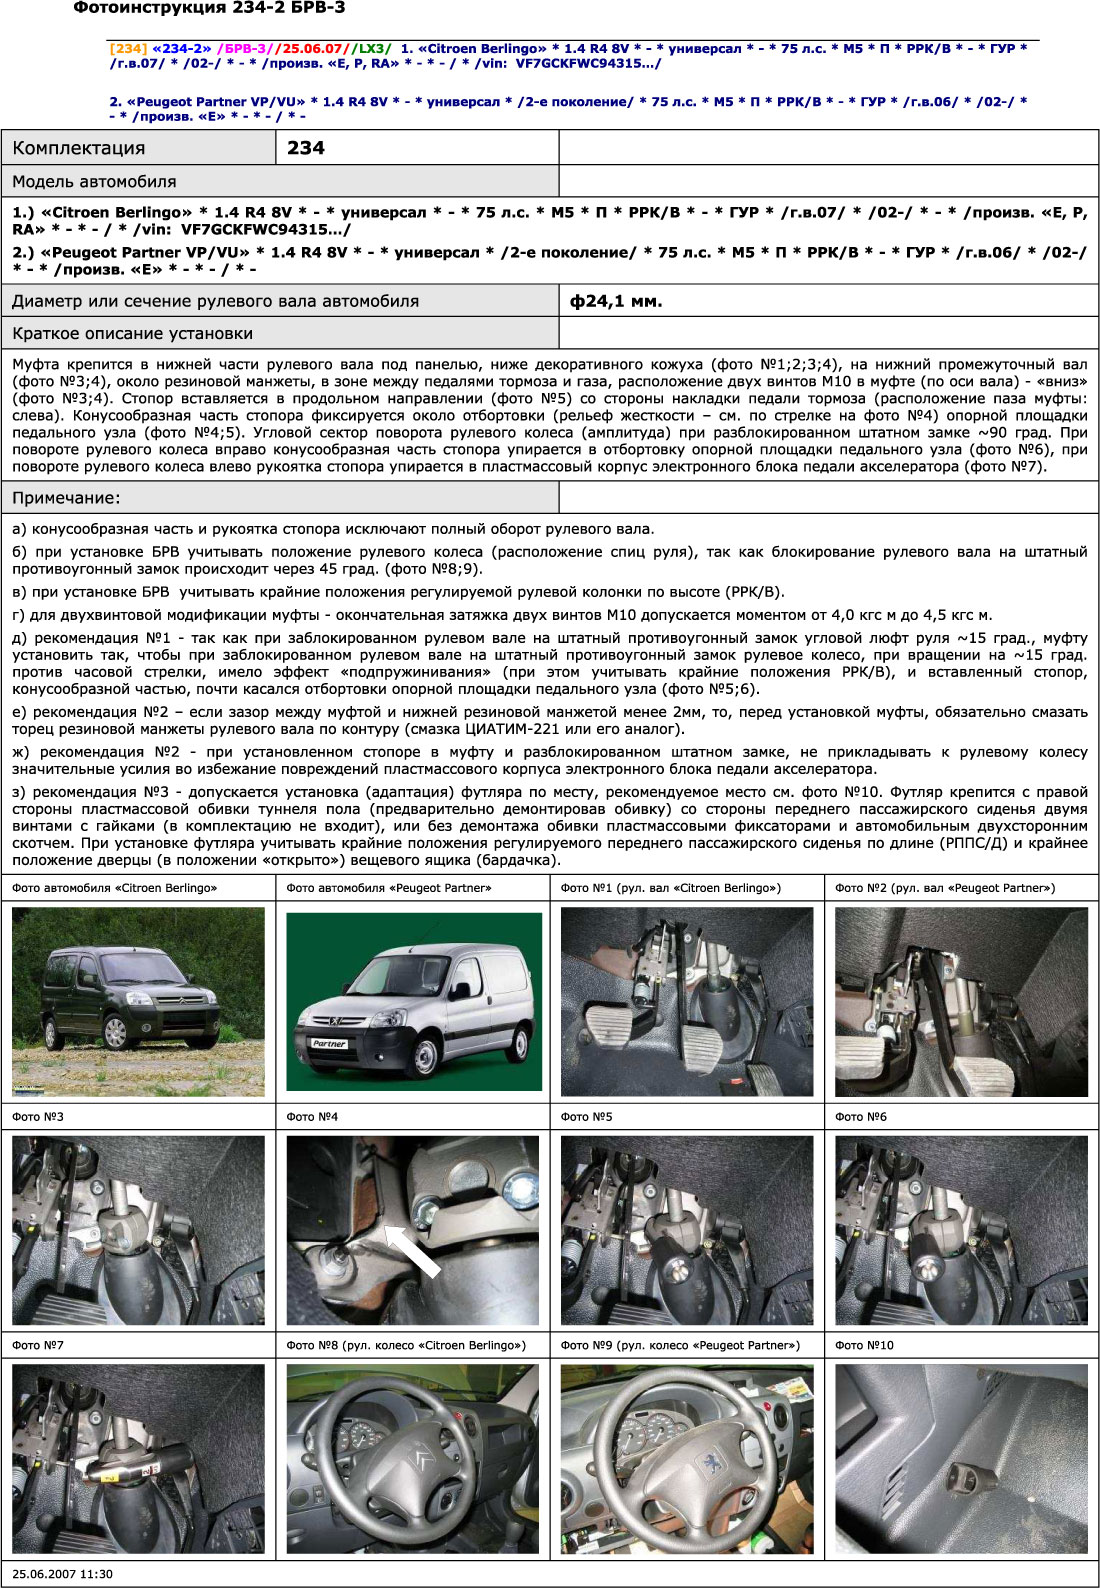 установка гарант блок люкс 234 на citroen berlingo